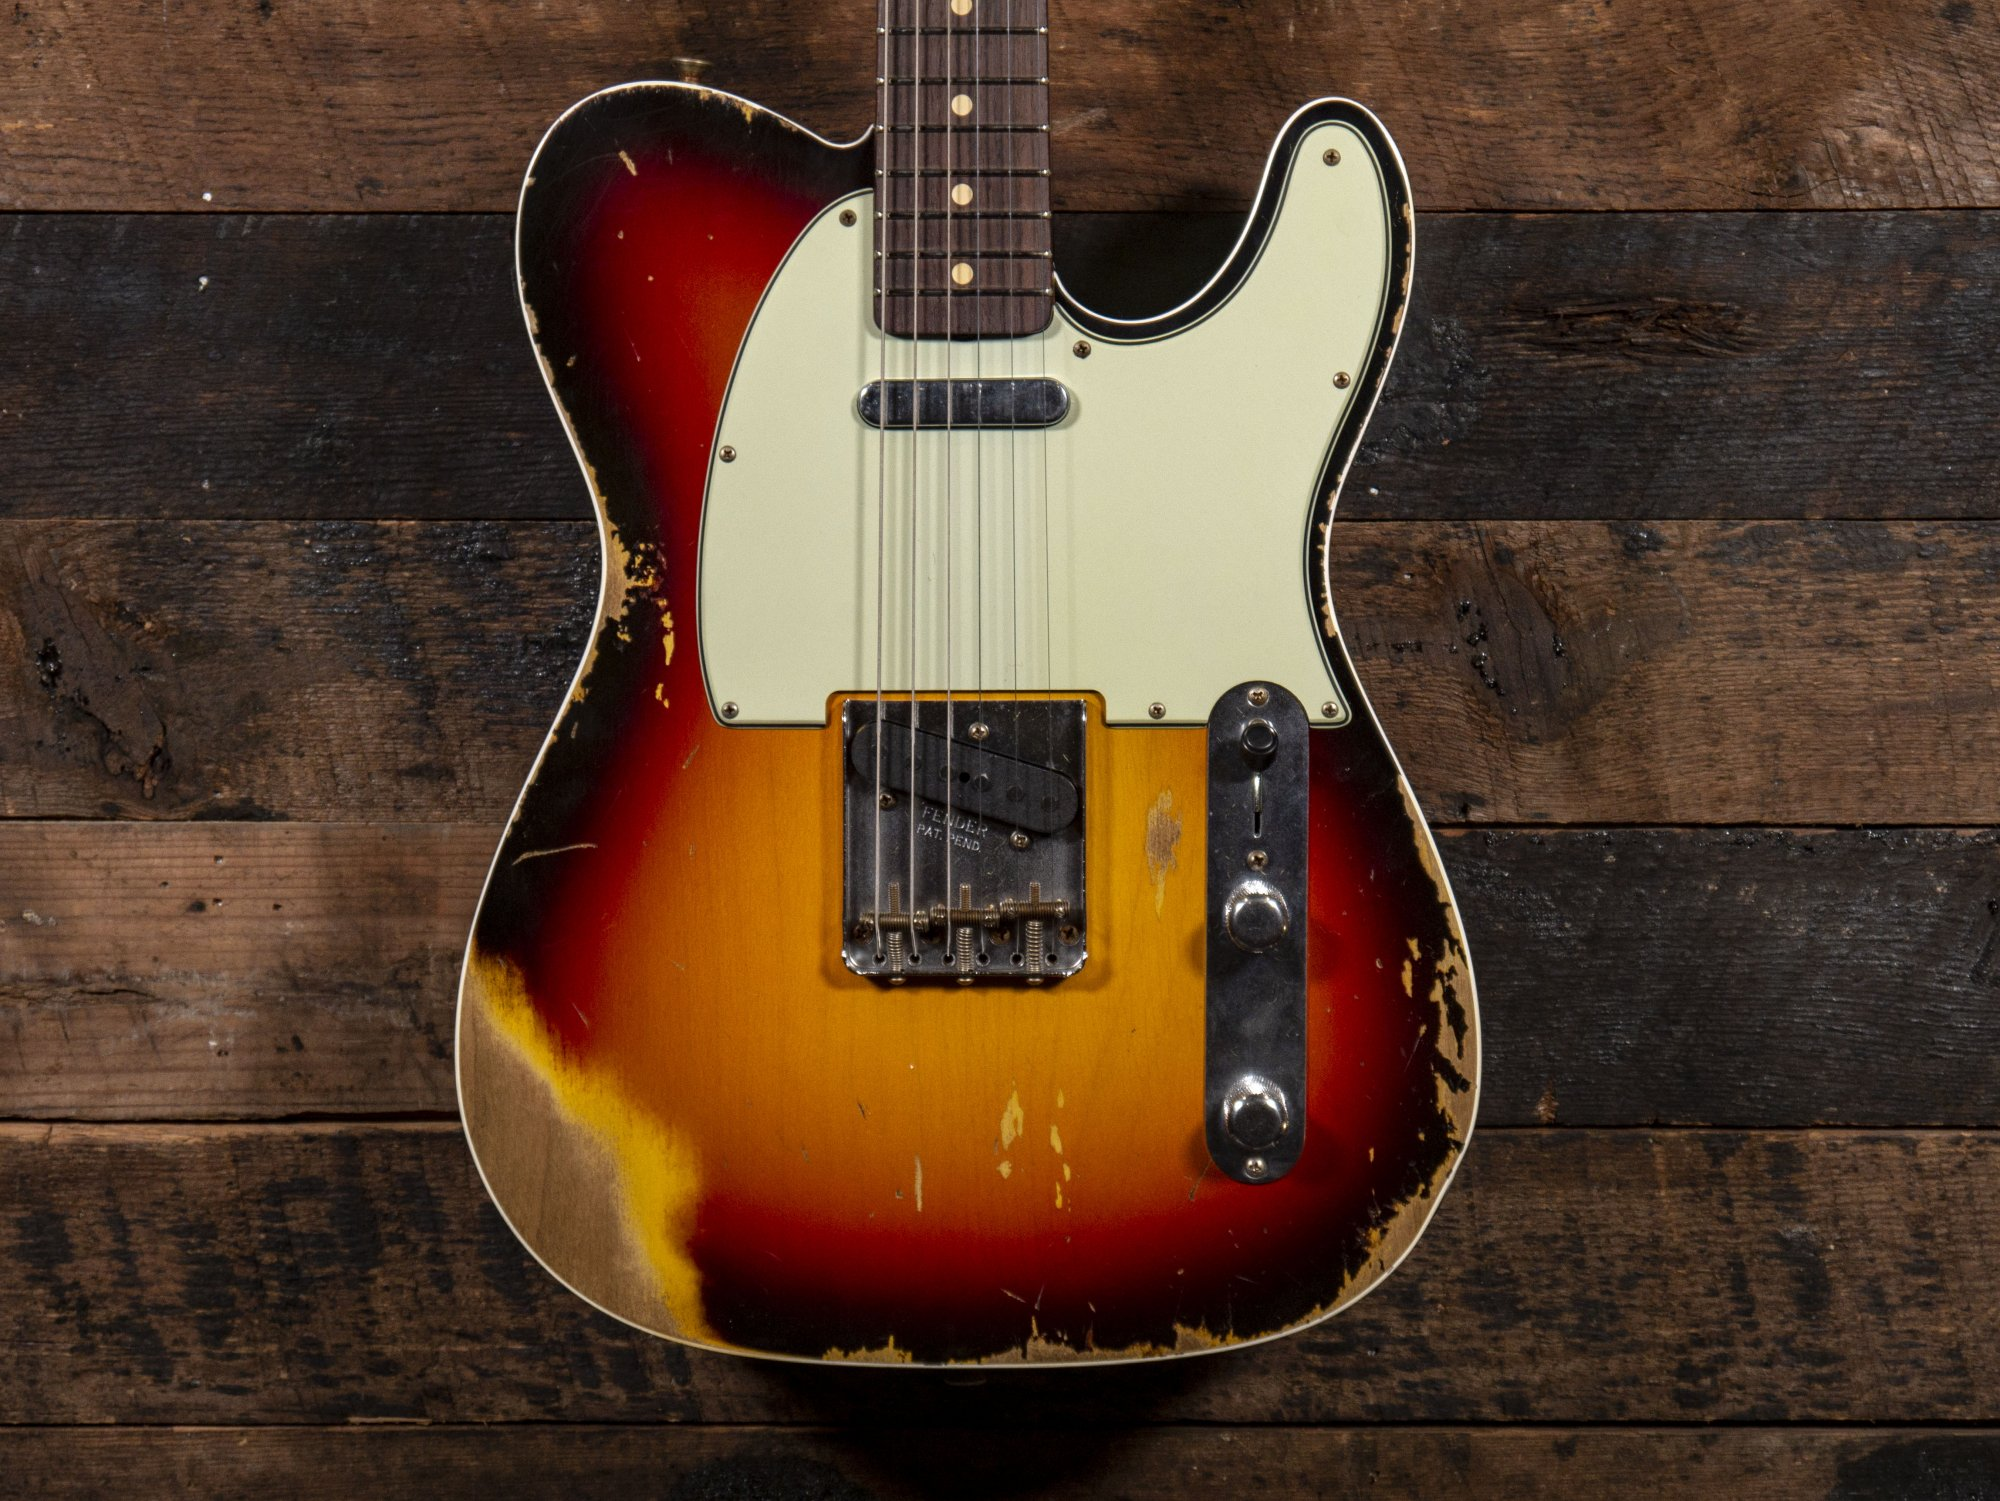 Fender Custom Shop 1960 Telecaster Custom Three Tone Sunburst Heavy Relic Serial Number (